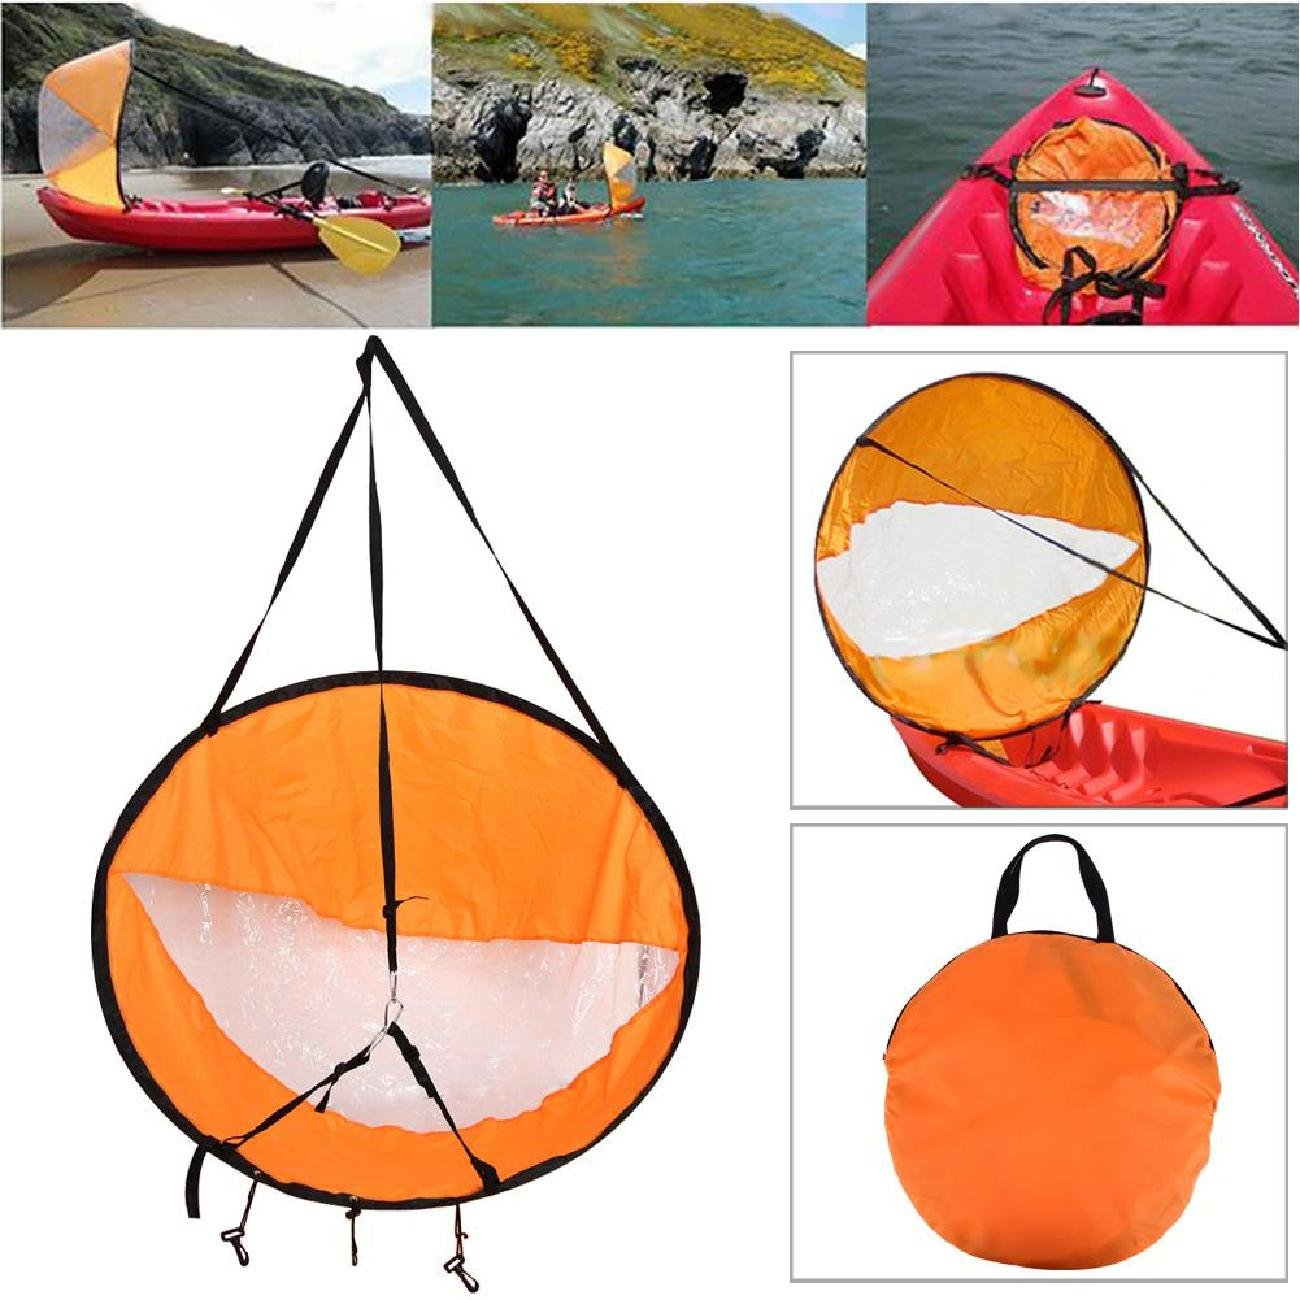 Liruis Kayak Downwind Kit 42 inches Kayak Canoe Accessories, Easy Setup & Deploys Quickly, Compact & Portable Orange